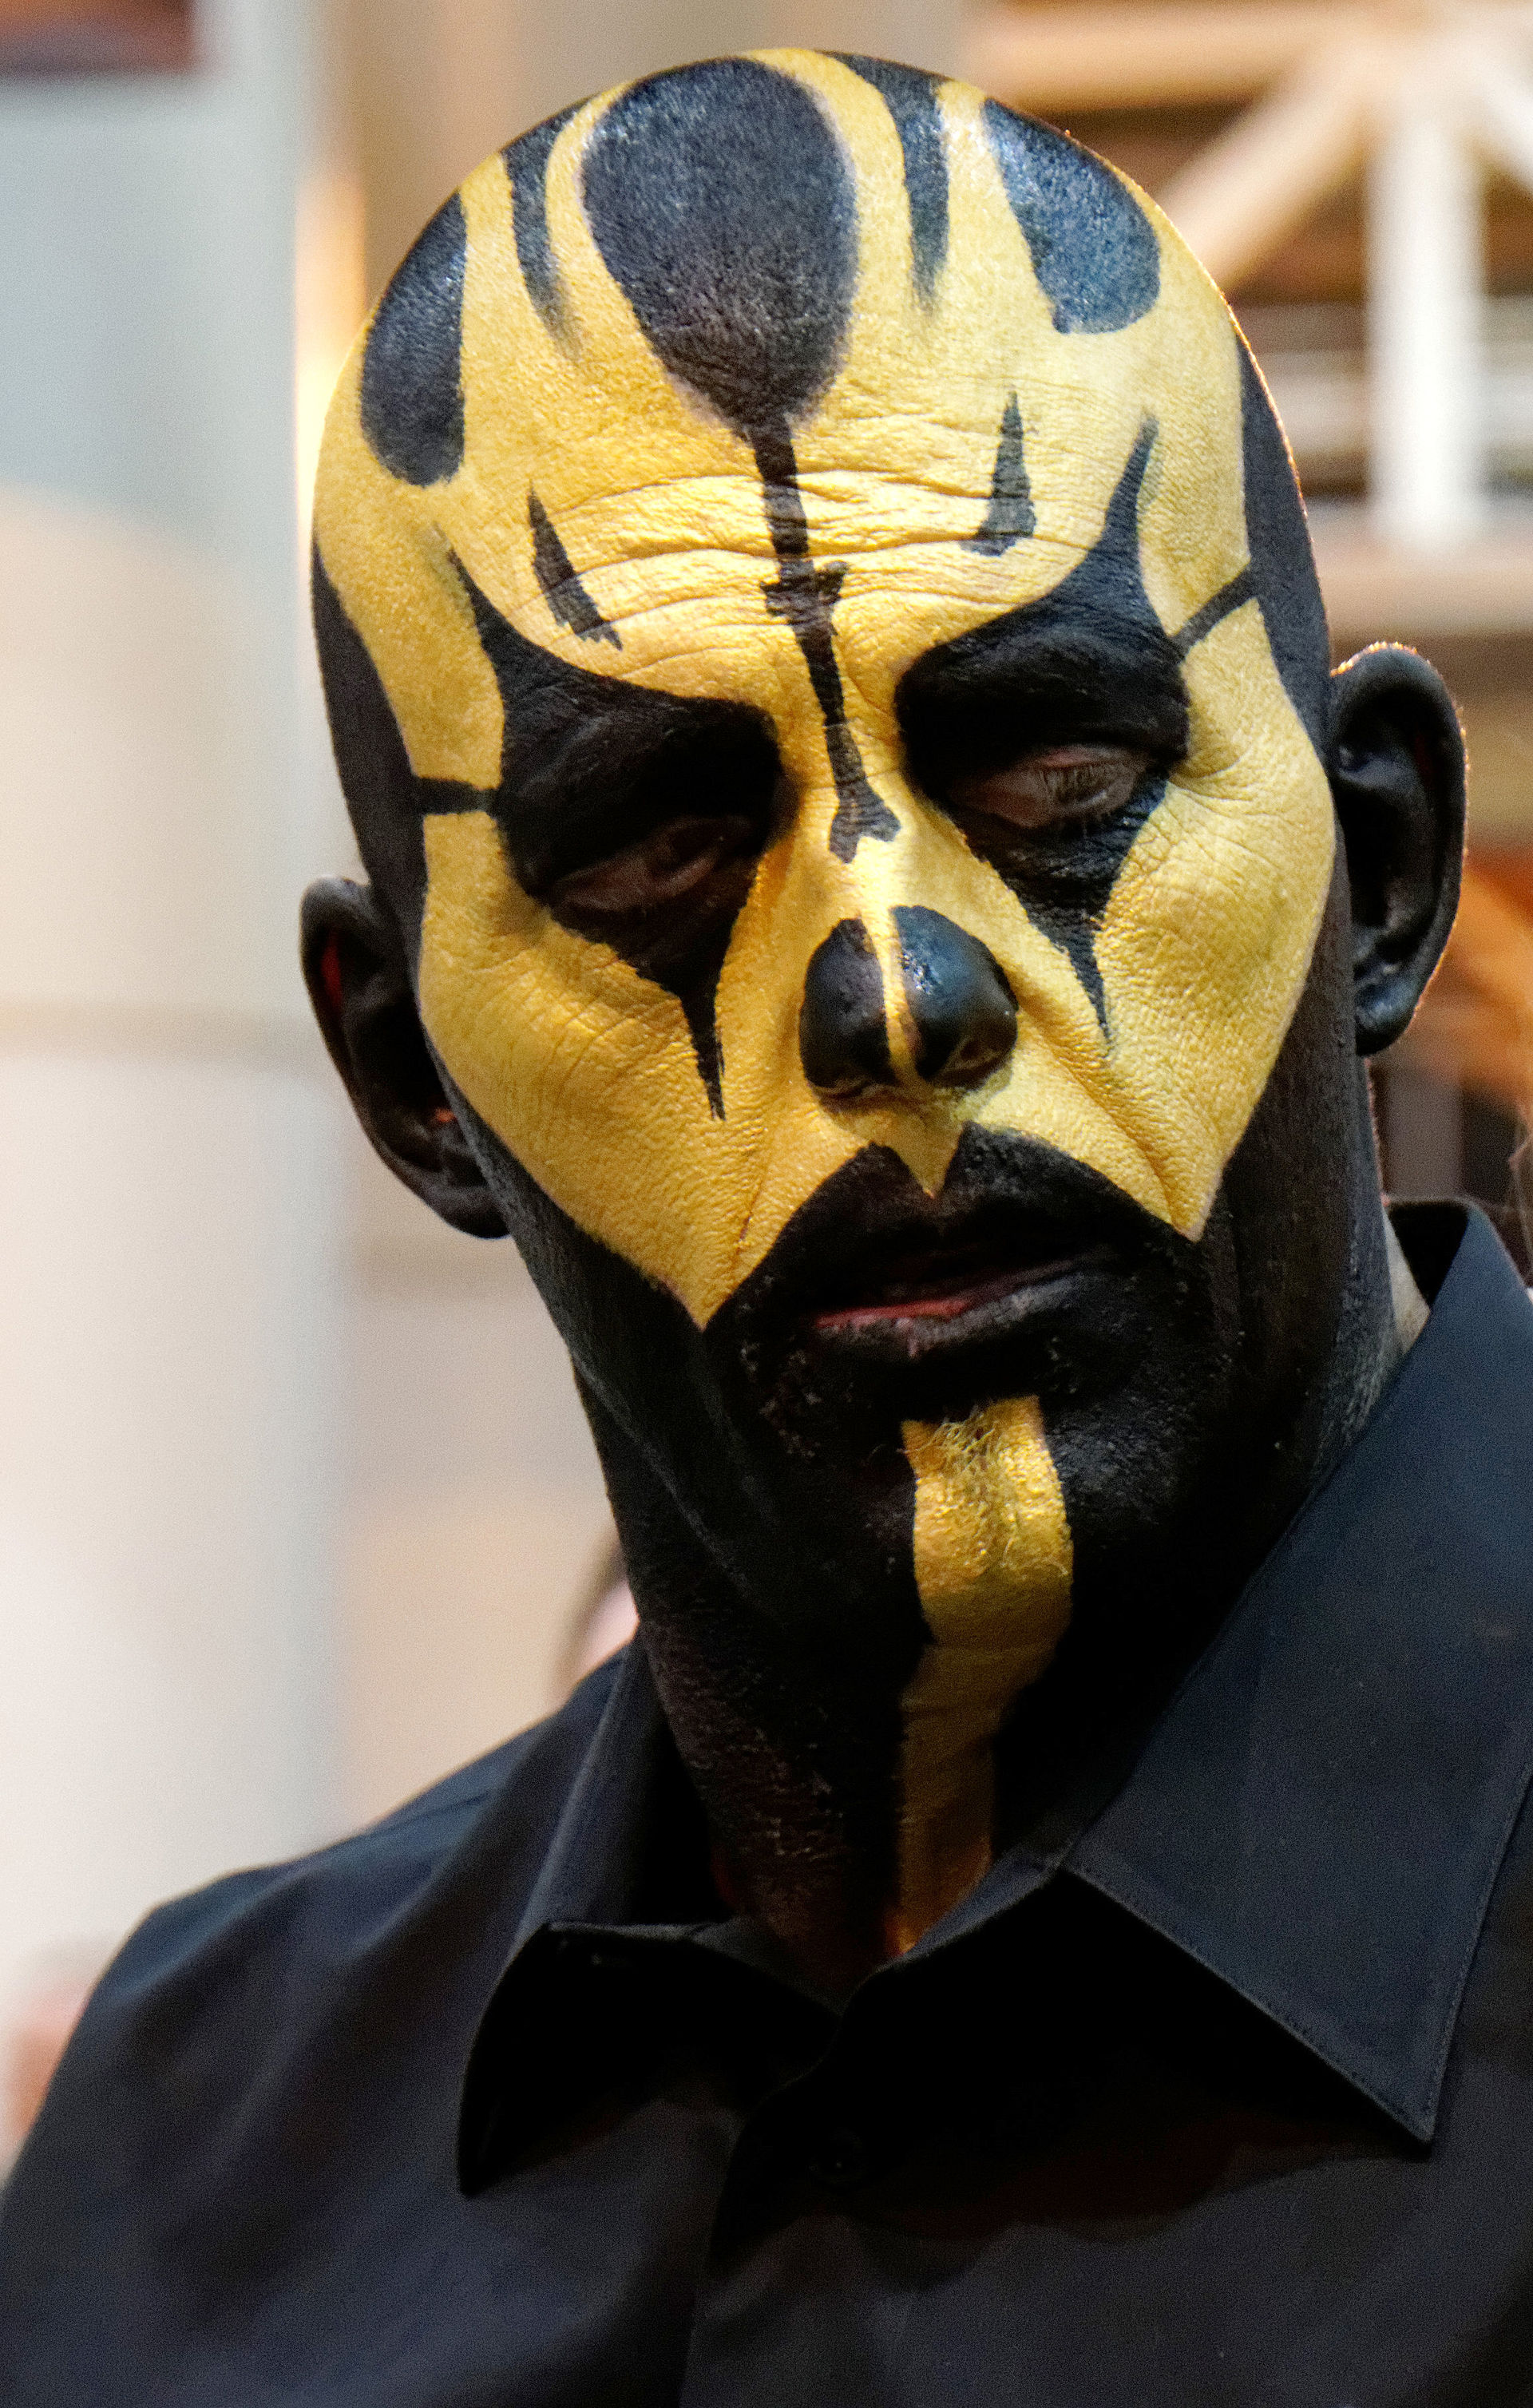 Goldust Wikipedia